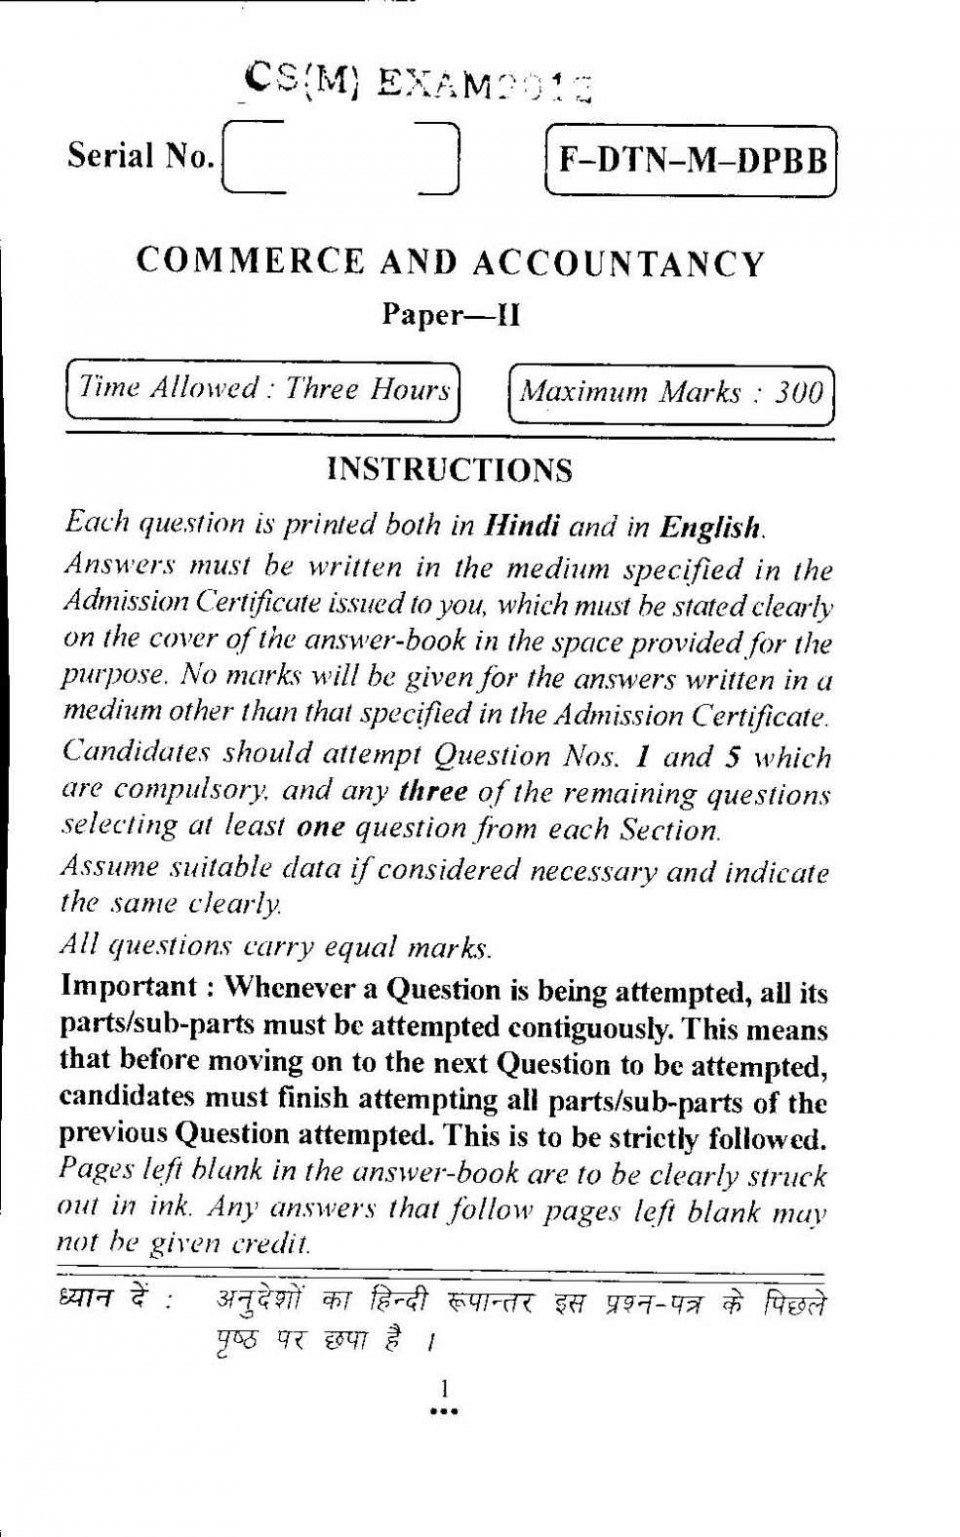 011 Civil Services Examination Commerce And Accountancy Paper Ii Previous Years Que Essay Example Marvelous Racism Tkam Pdf In Othello Free 960